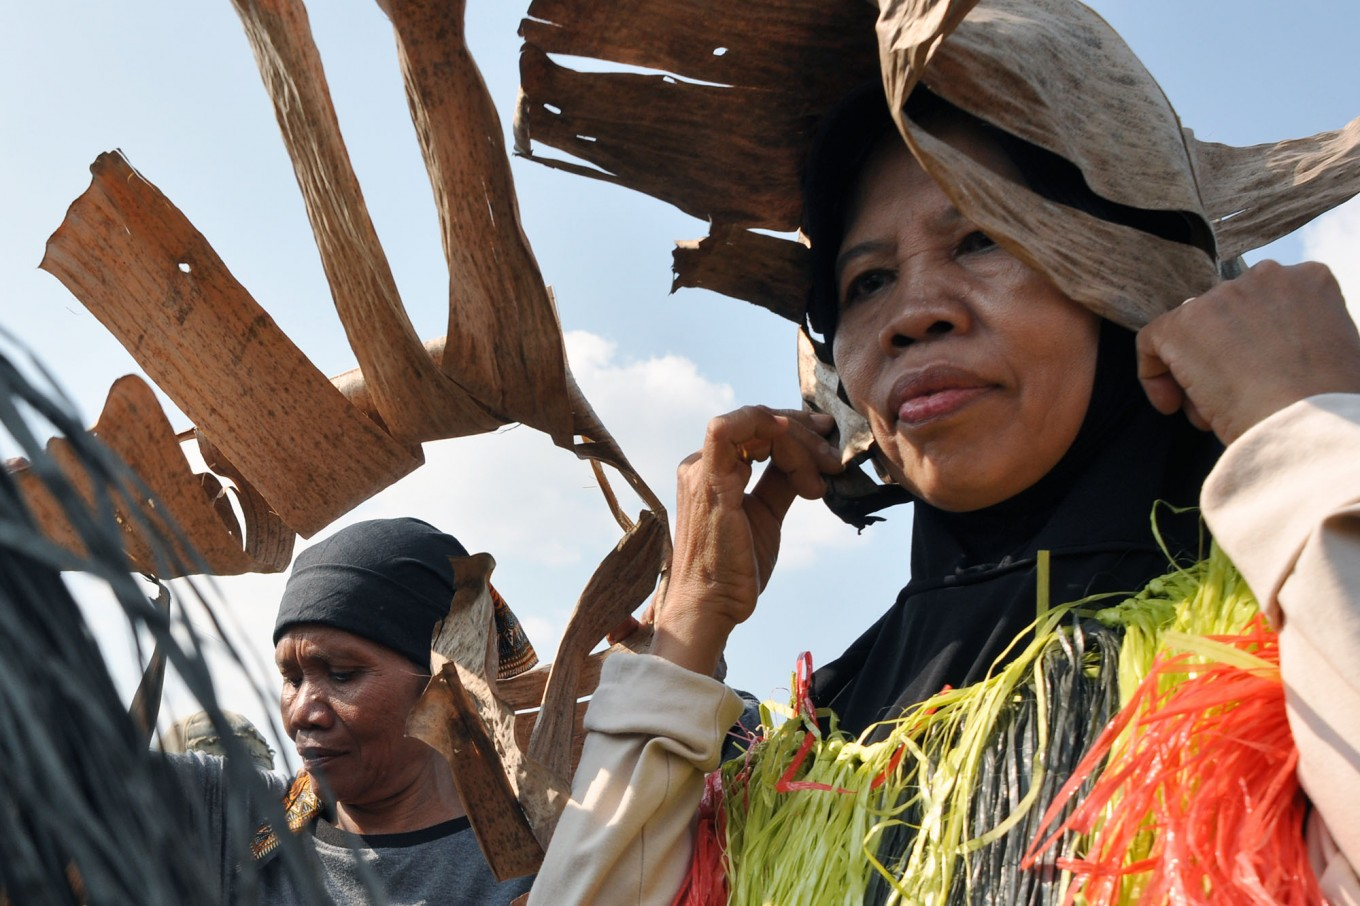 Two women get ready to perform Gejog Lesung by placing dried banana leaves on their heads. JP/Magnus Hendratmo